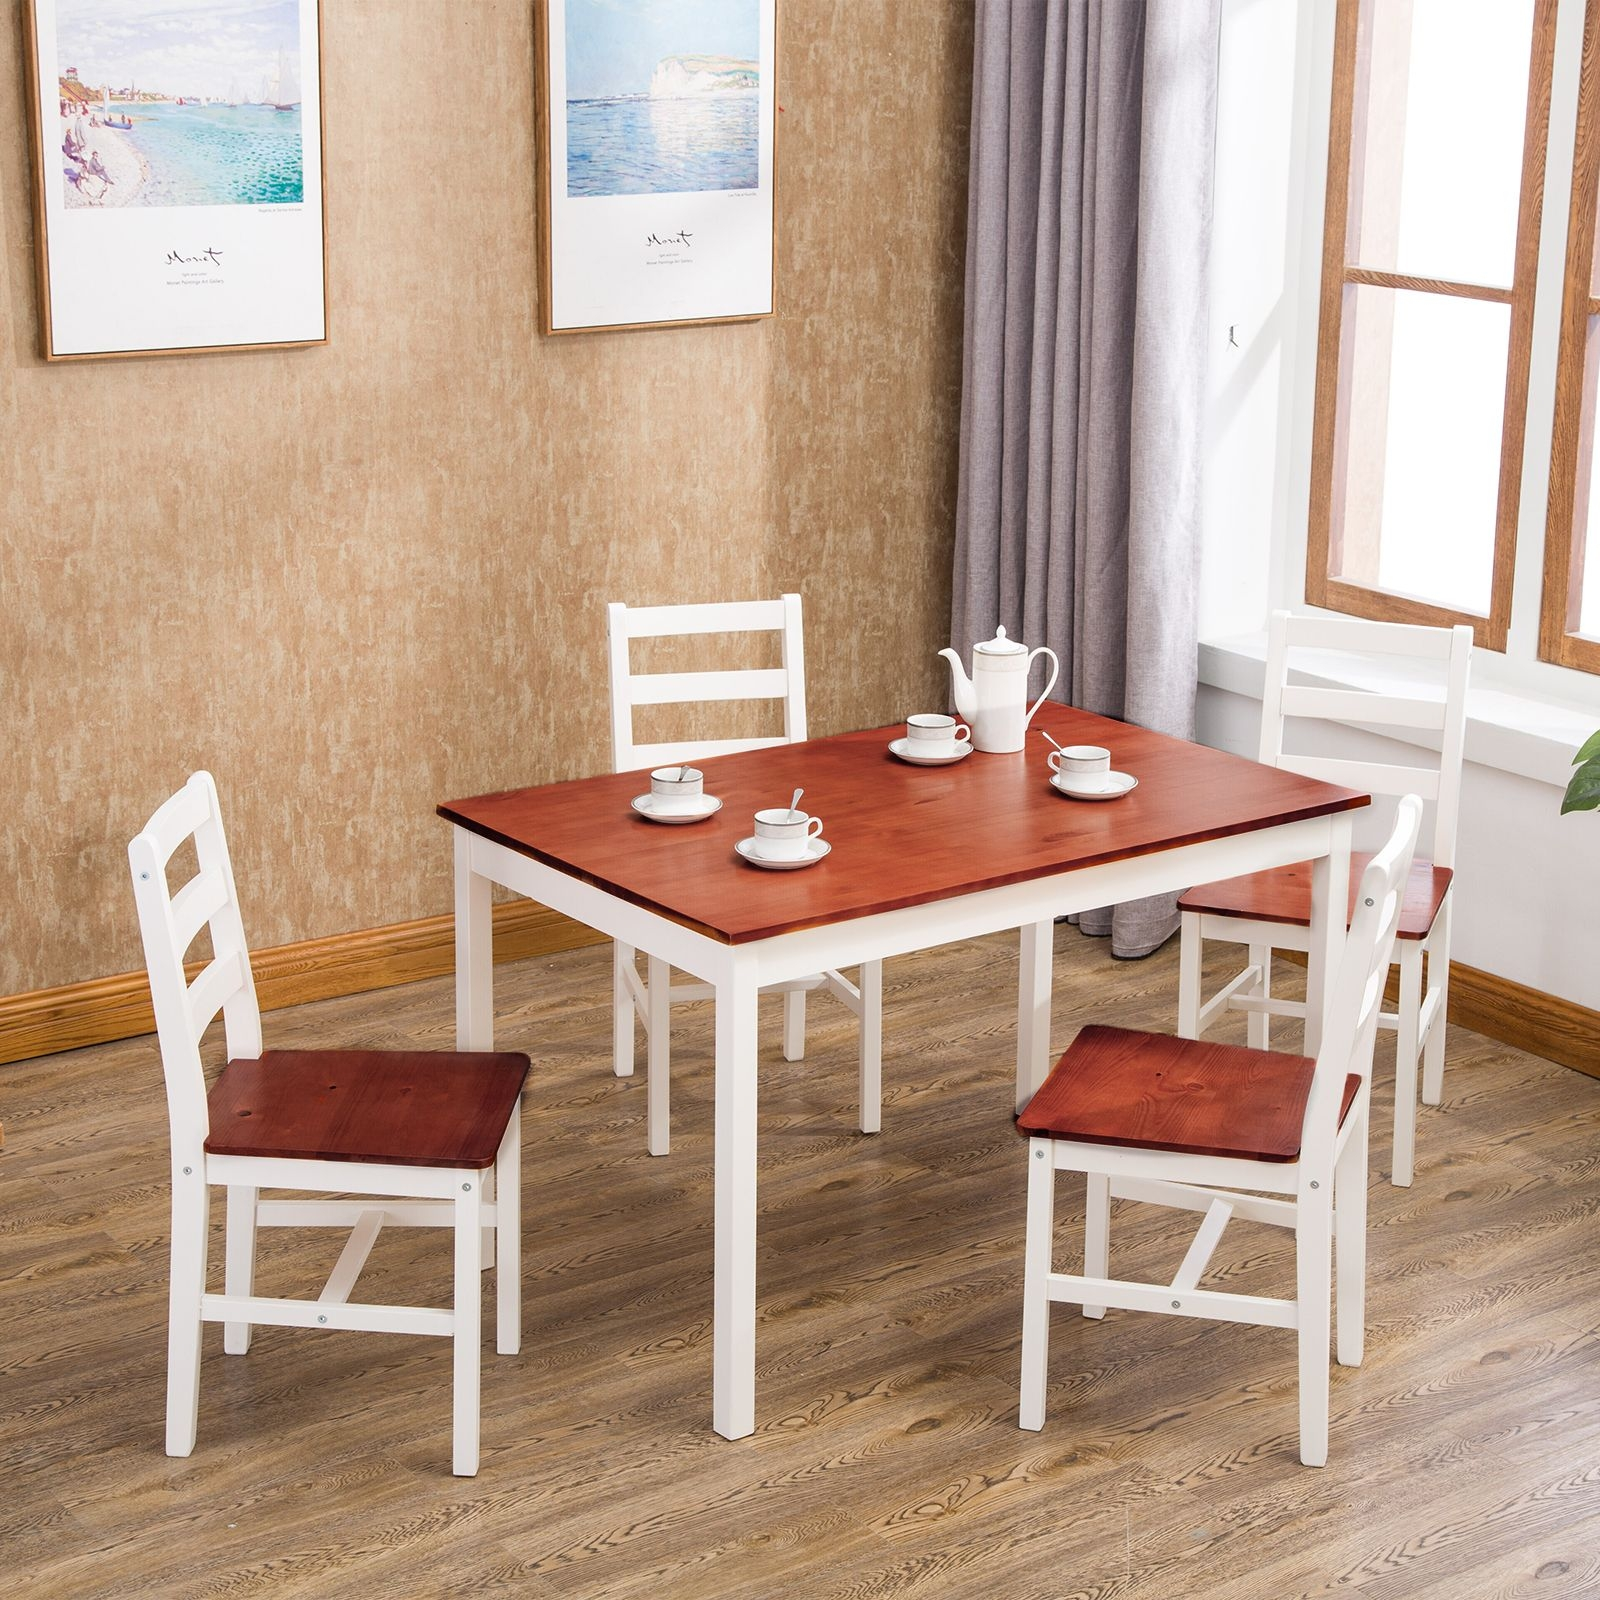 Mecor 5 Piece Dining Table Set 4 Wood Chairs Kitchen Furniture Wood  Walmart